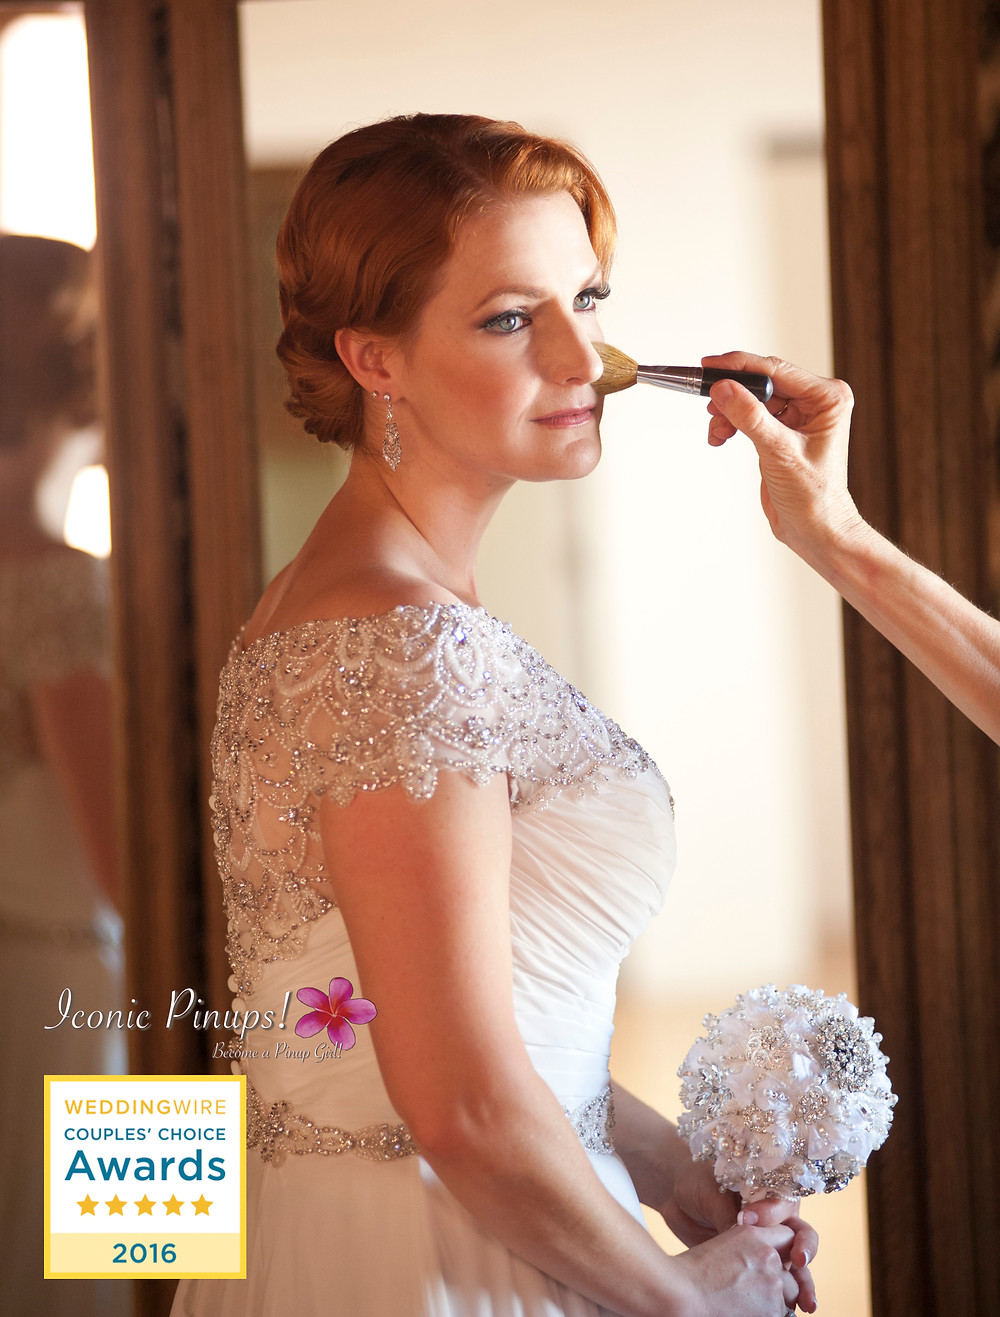 Gatsby Vintage Retro Bride Makeup and Hair and Photography for Los Angeles Wedding at the Carondelet House!